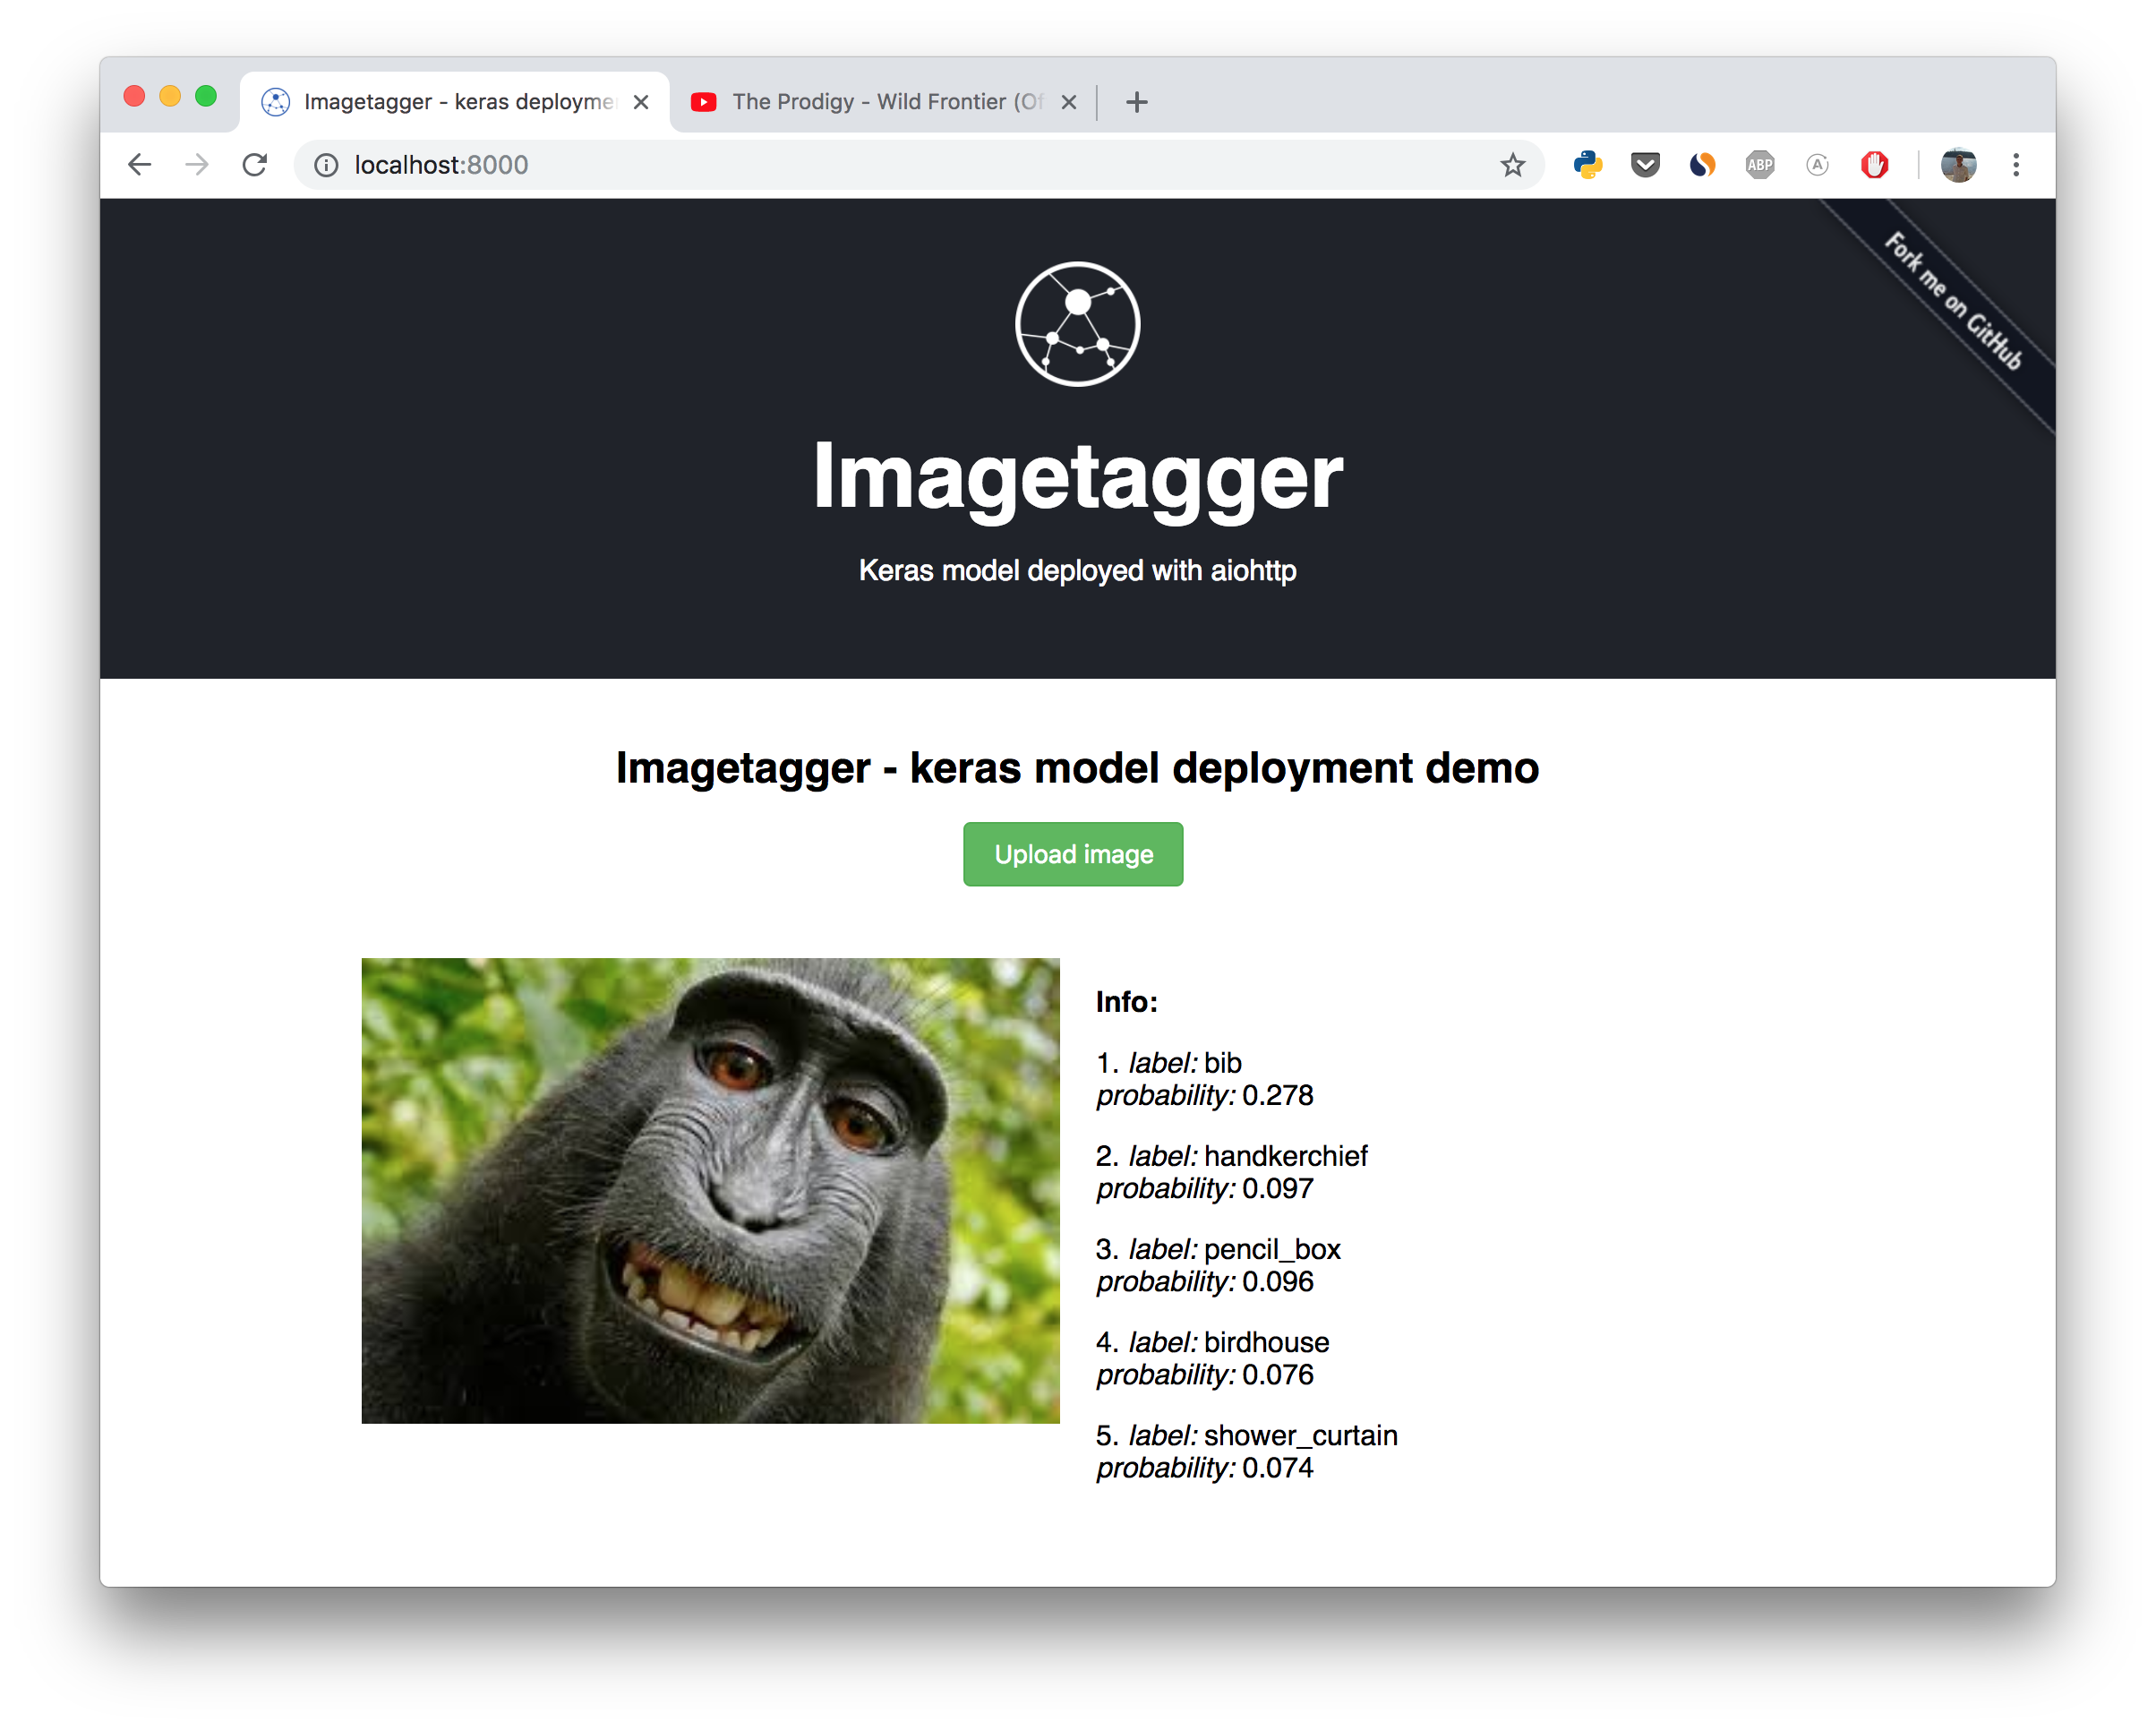 https://raw.githubusercontent.com/aio-libs/aiohttp-demos/master/docs/_static/imagetagger.png